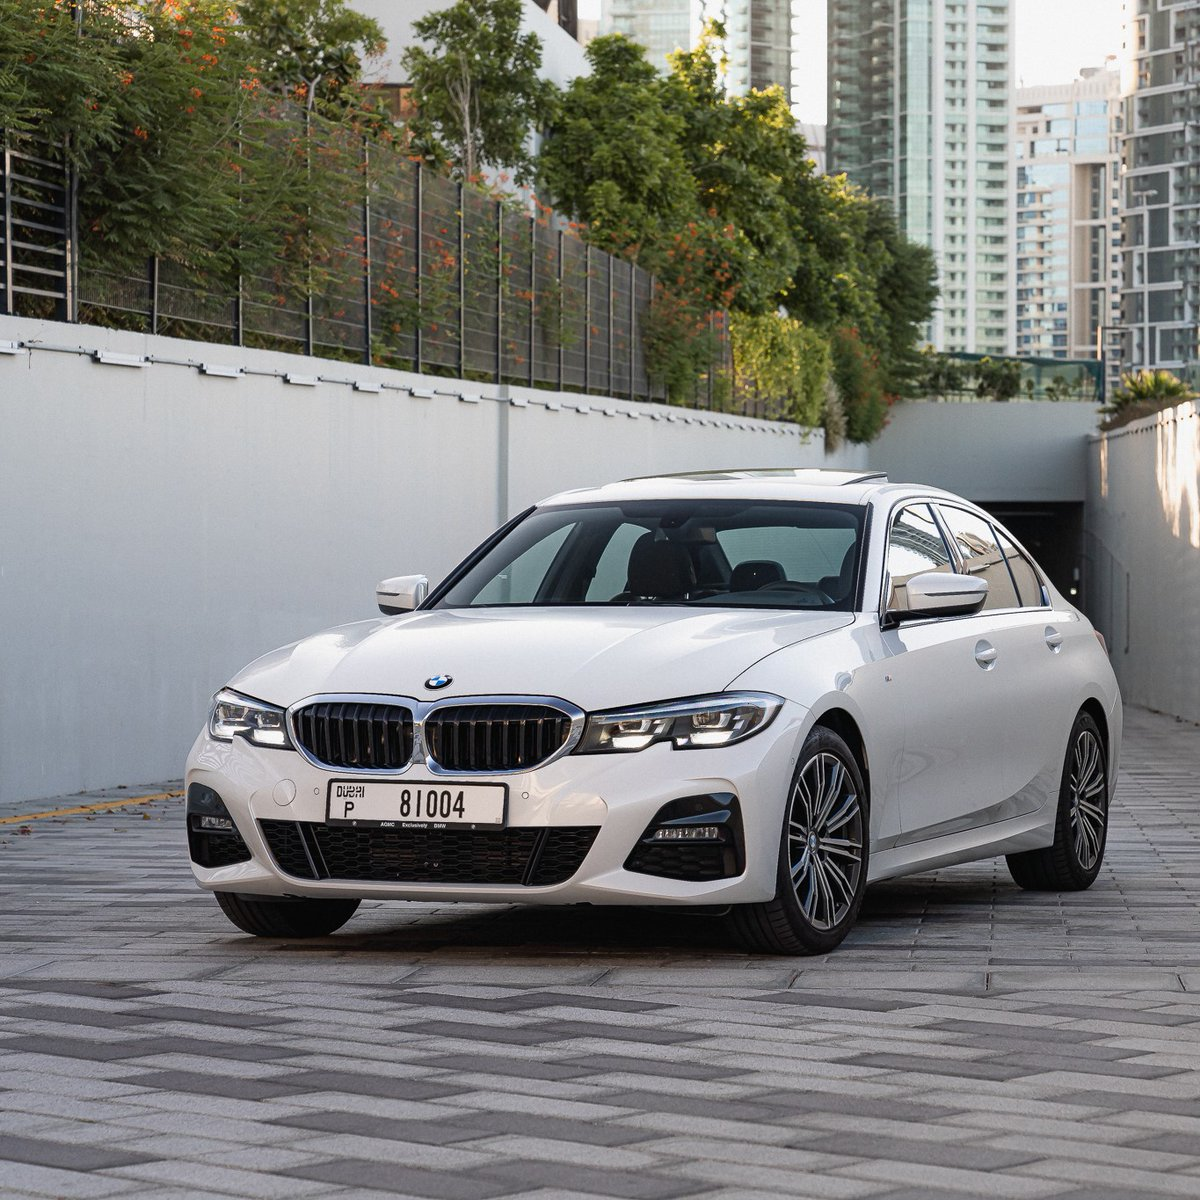 Discover the sporty character of The 3 first-hand. 🙌 Contact us to book your test drive.  #BMW3Series #BMWAGMC #BMW320i #BMW #mydubai #uae